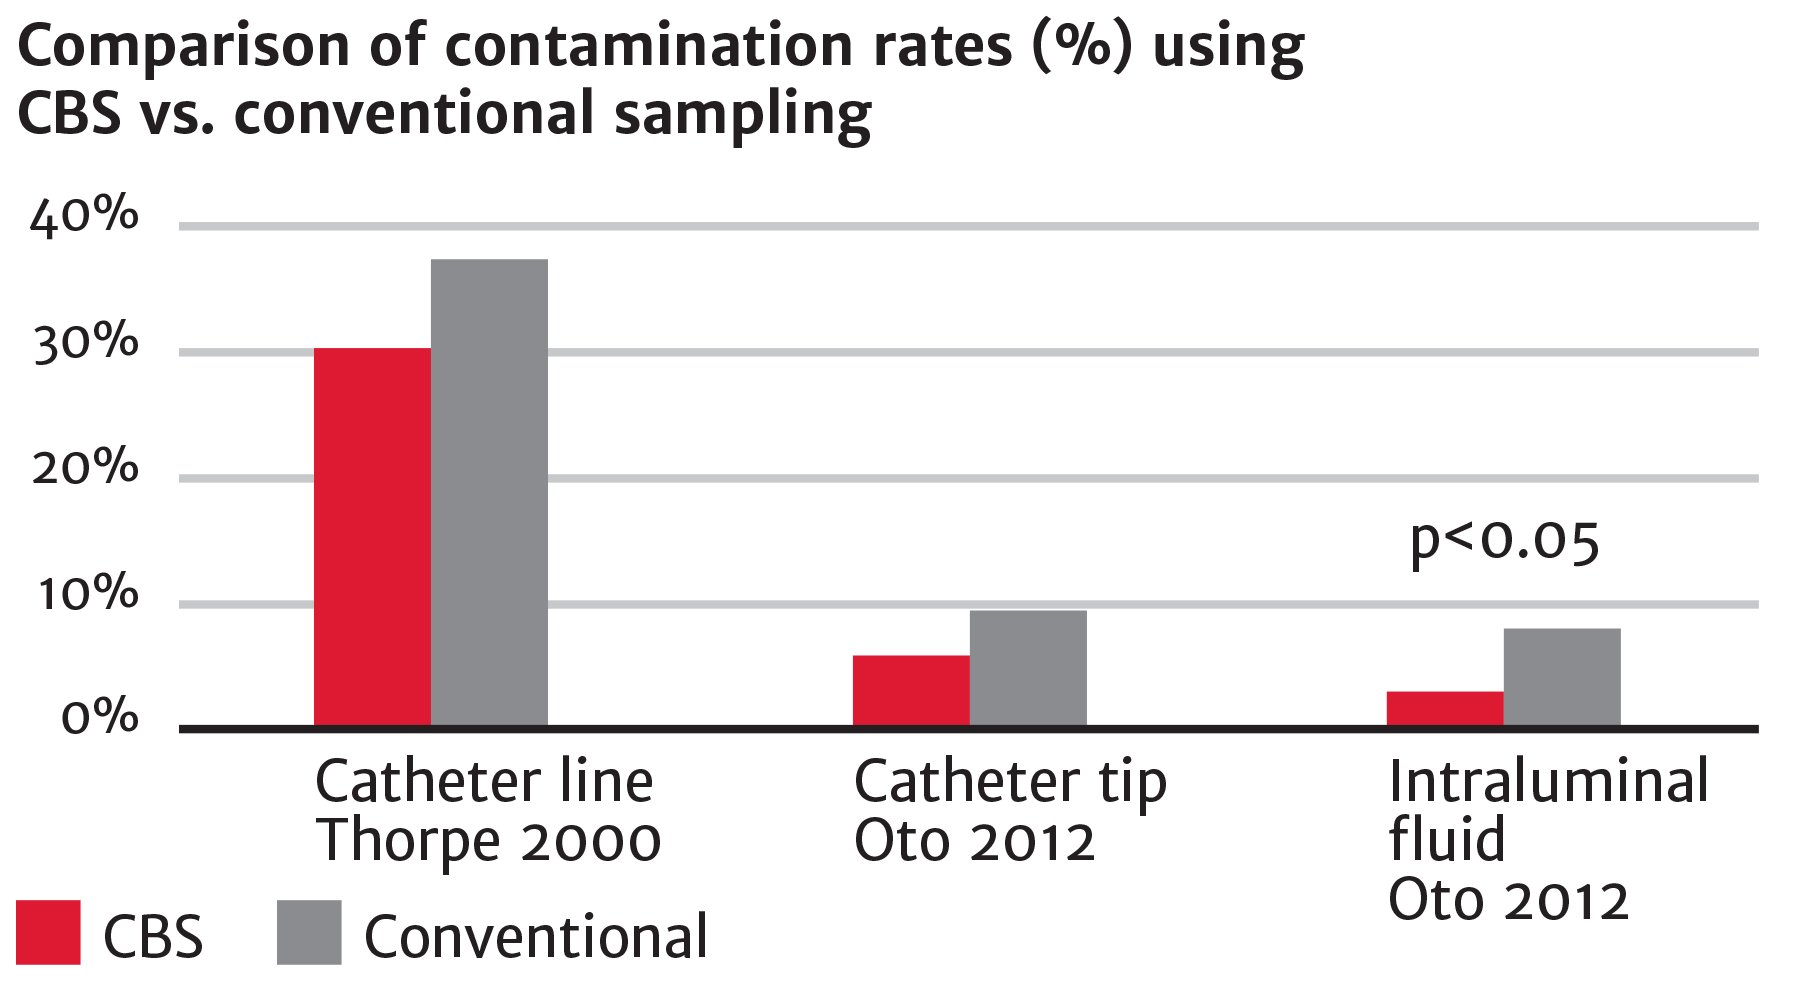 Compare contamination rates